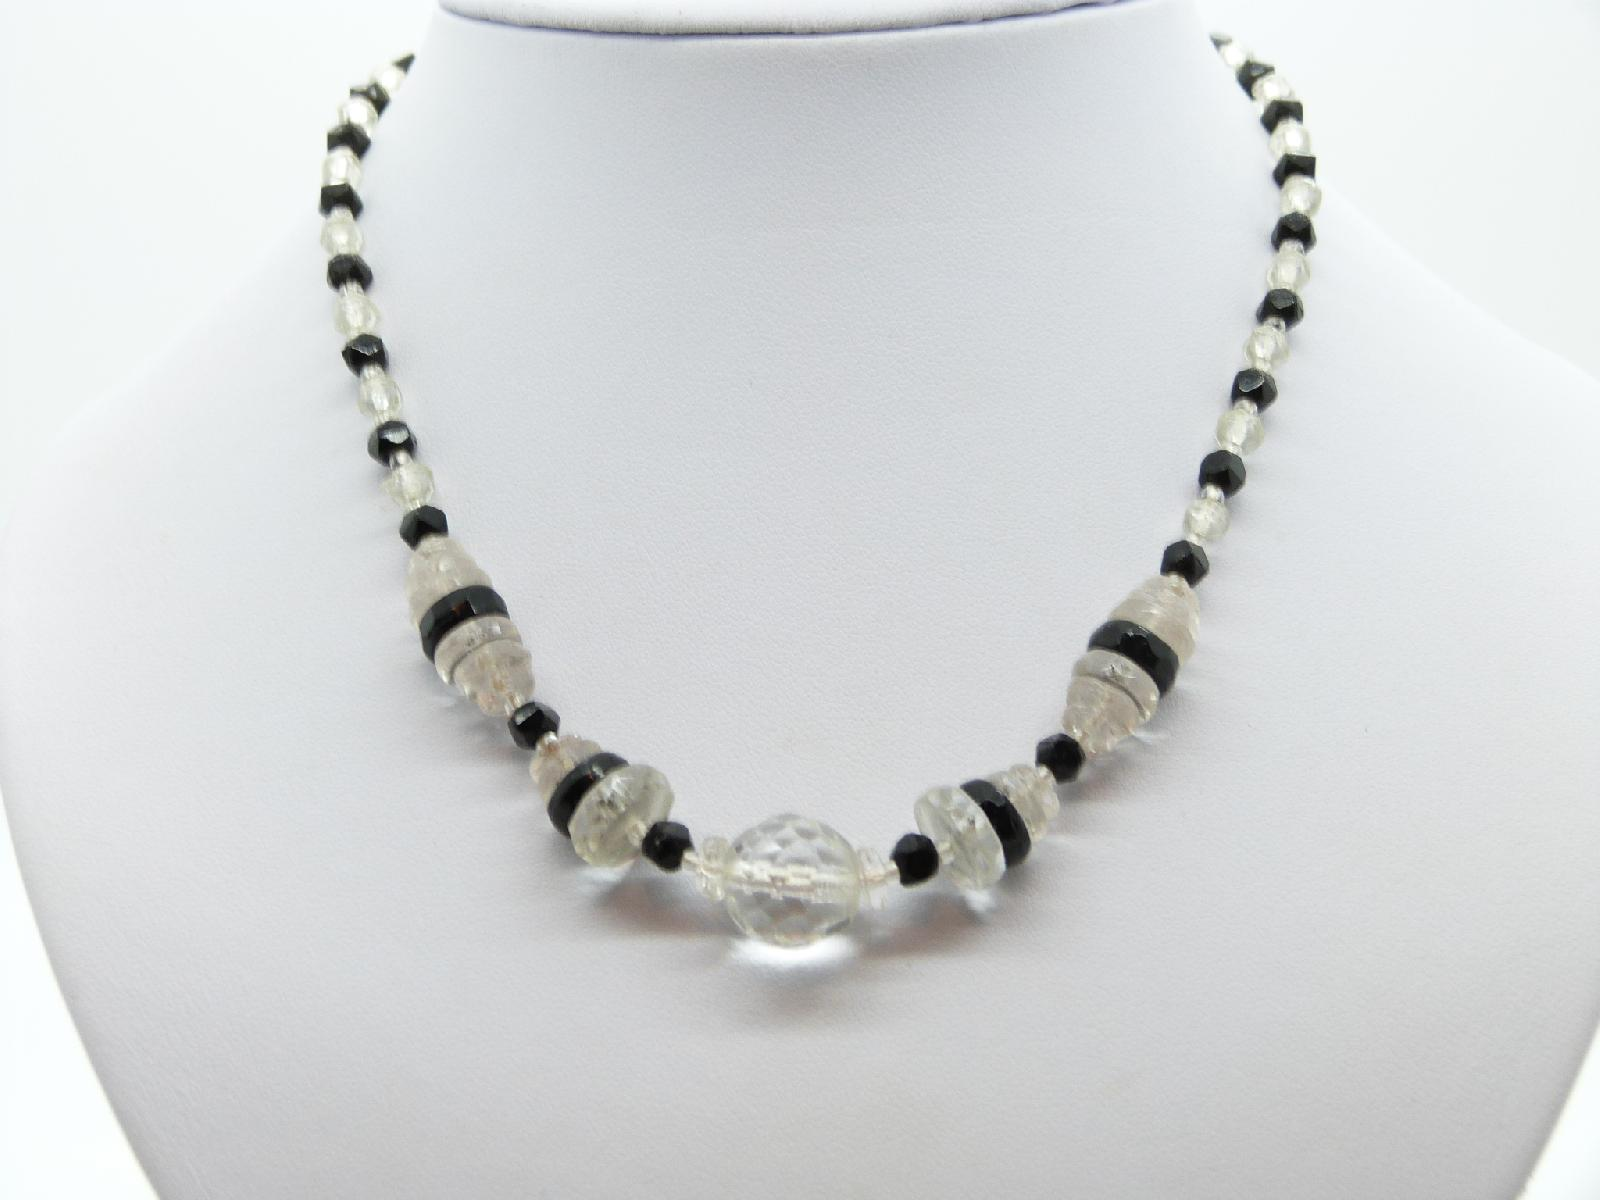 Vintage 30s Geometric Art Deco Black and Clear Glass Crystal Bead Necklace